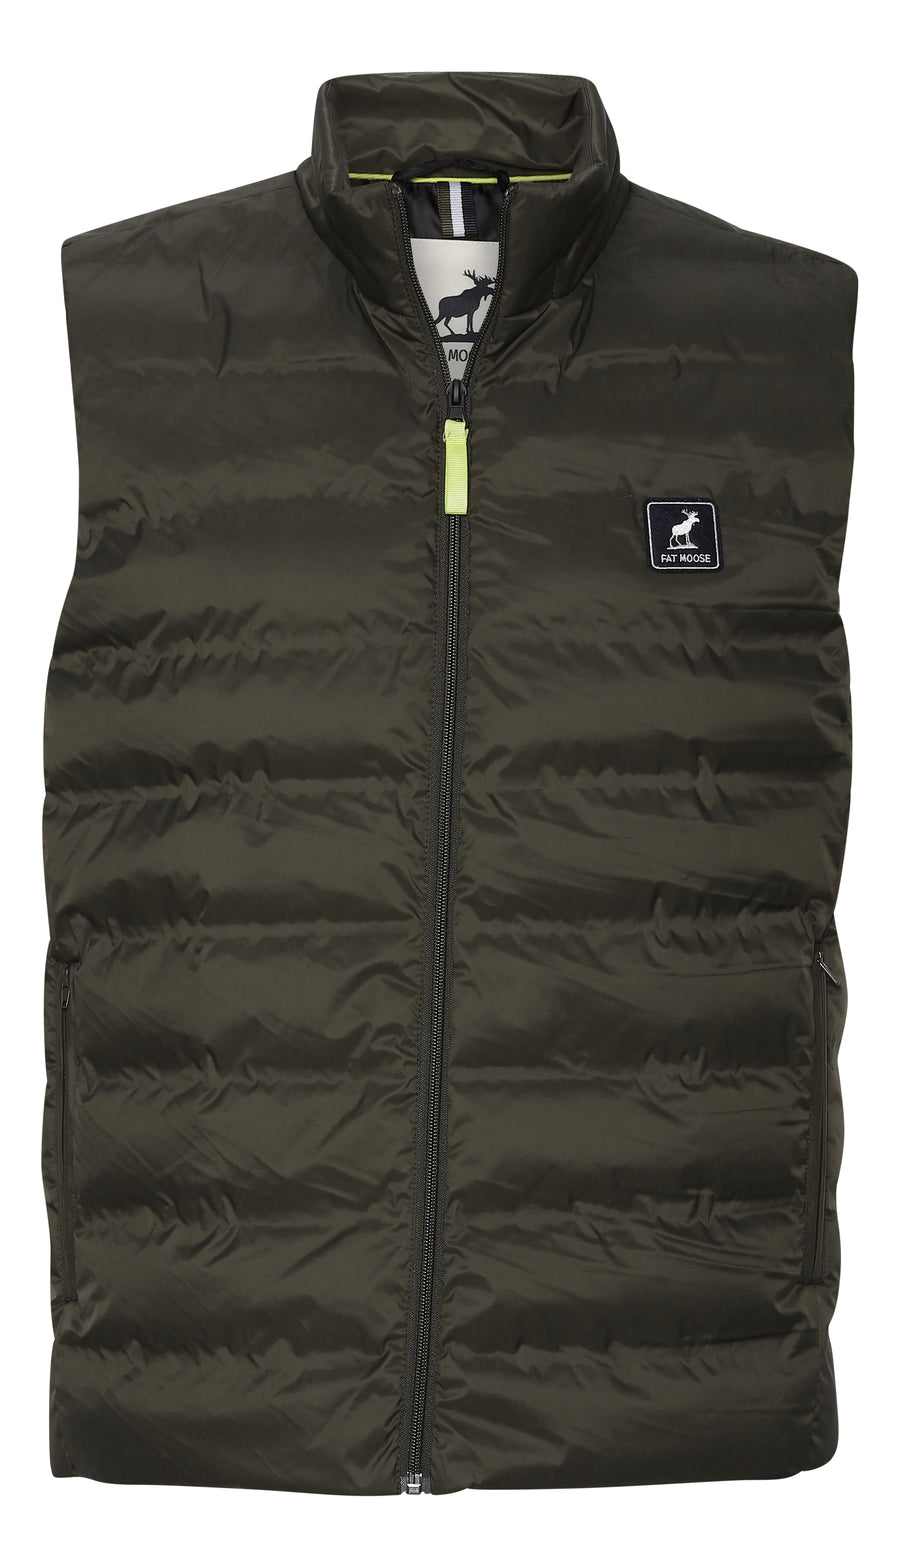 Fat Moose - Duncan 100% Recycled Polyester Gillet - Beetle Green